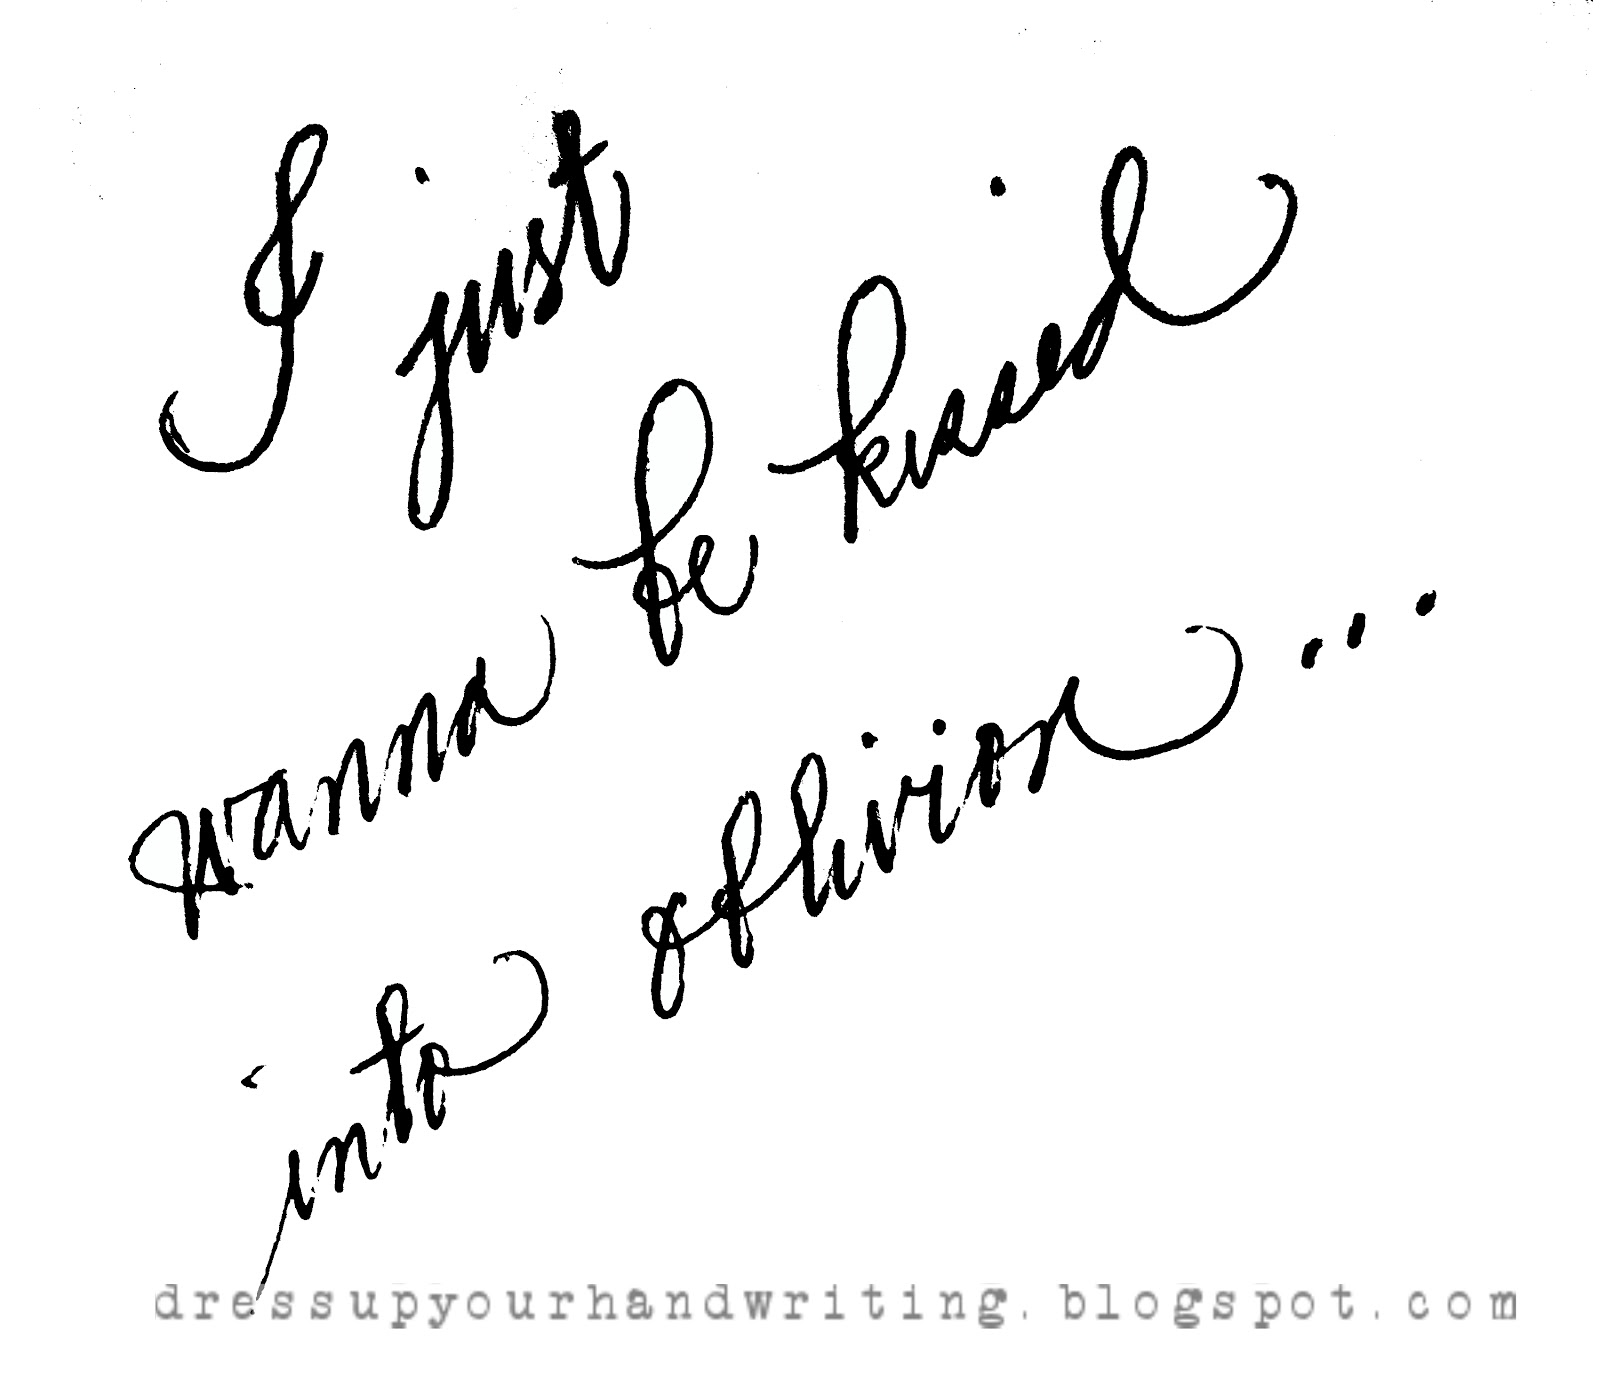 Black dress up quotes - Handwritten Quotes To Be Kissed